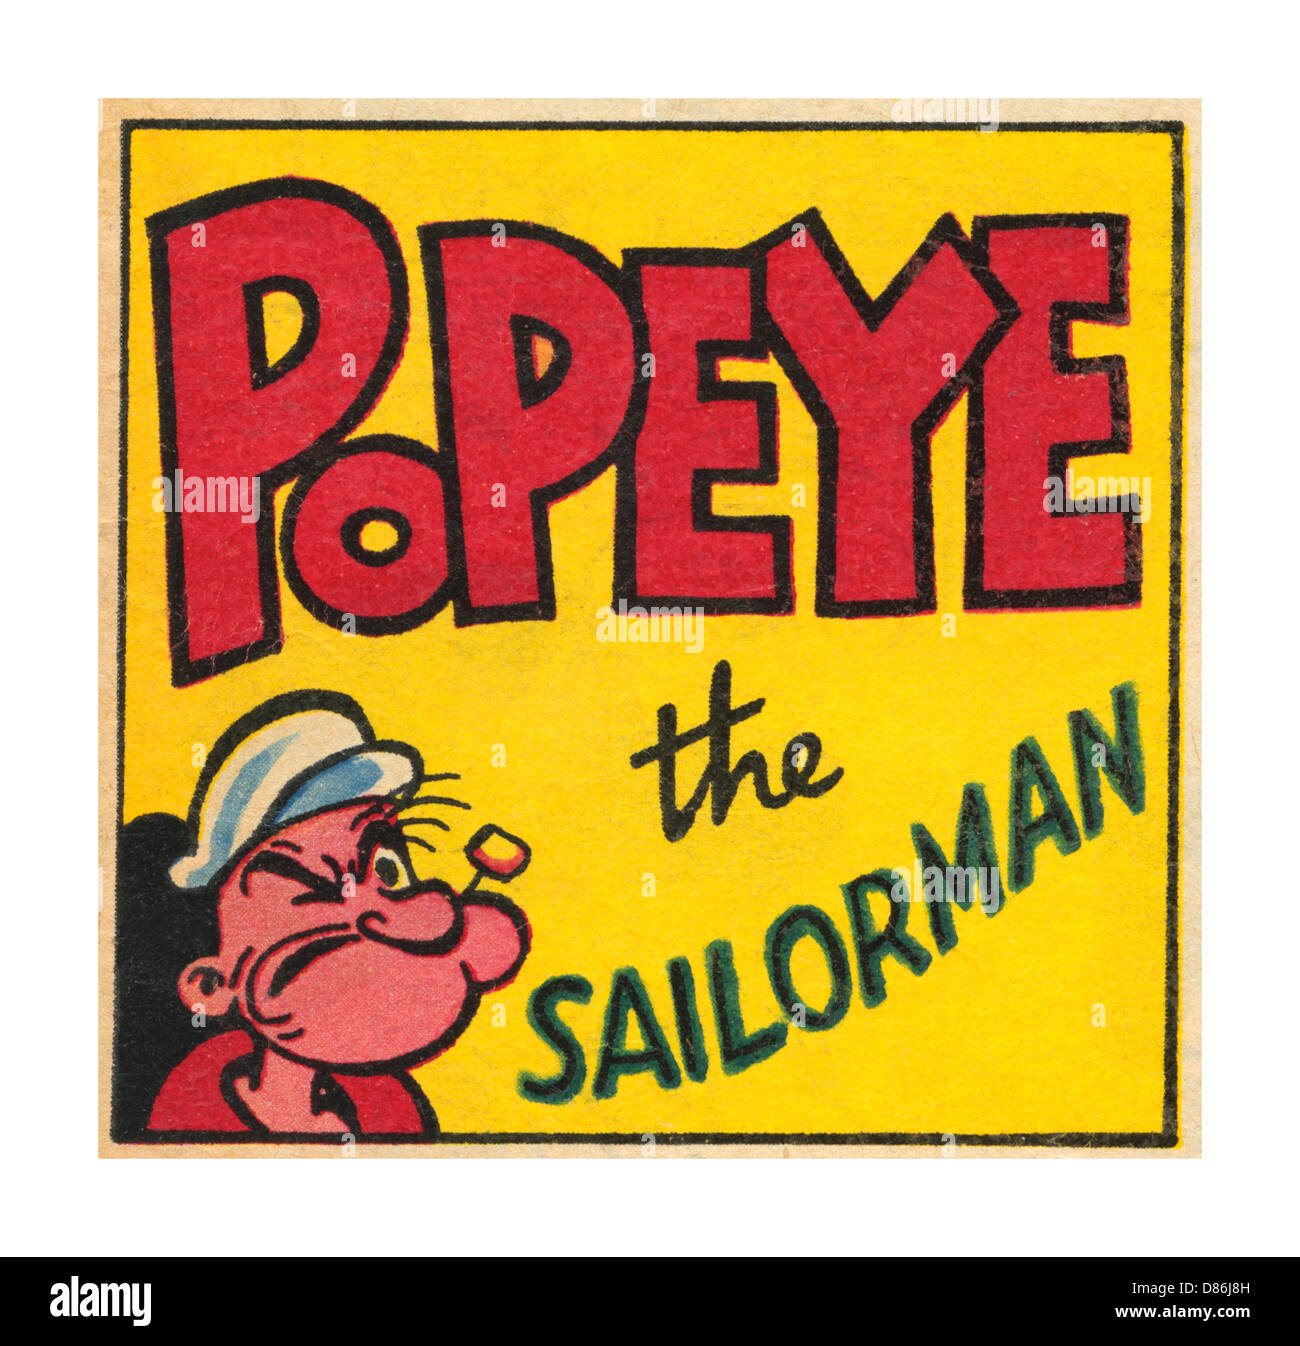 Popeye the Sailor Man is a cartoon comic hero fictional character who has appeared in comic strips and cartoons Stock Photo